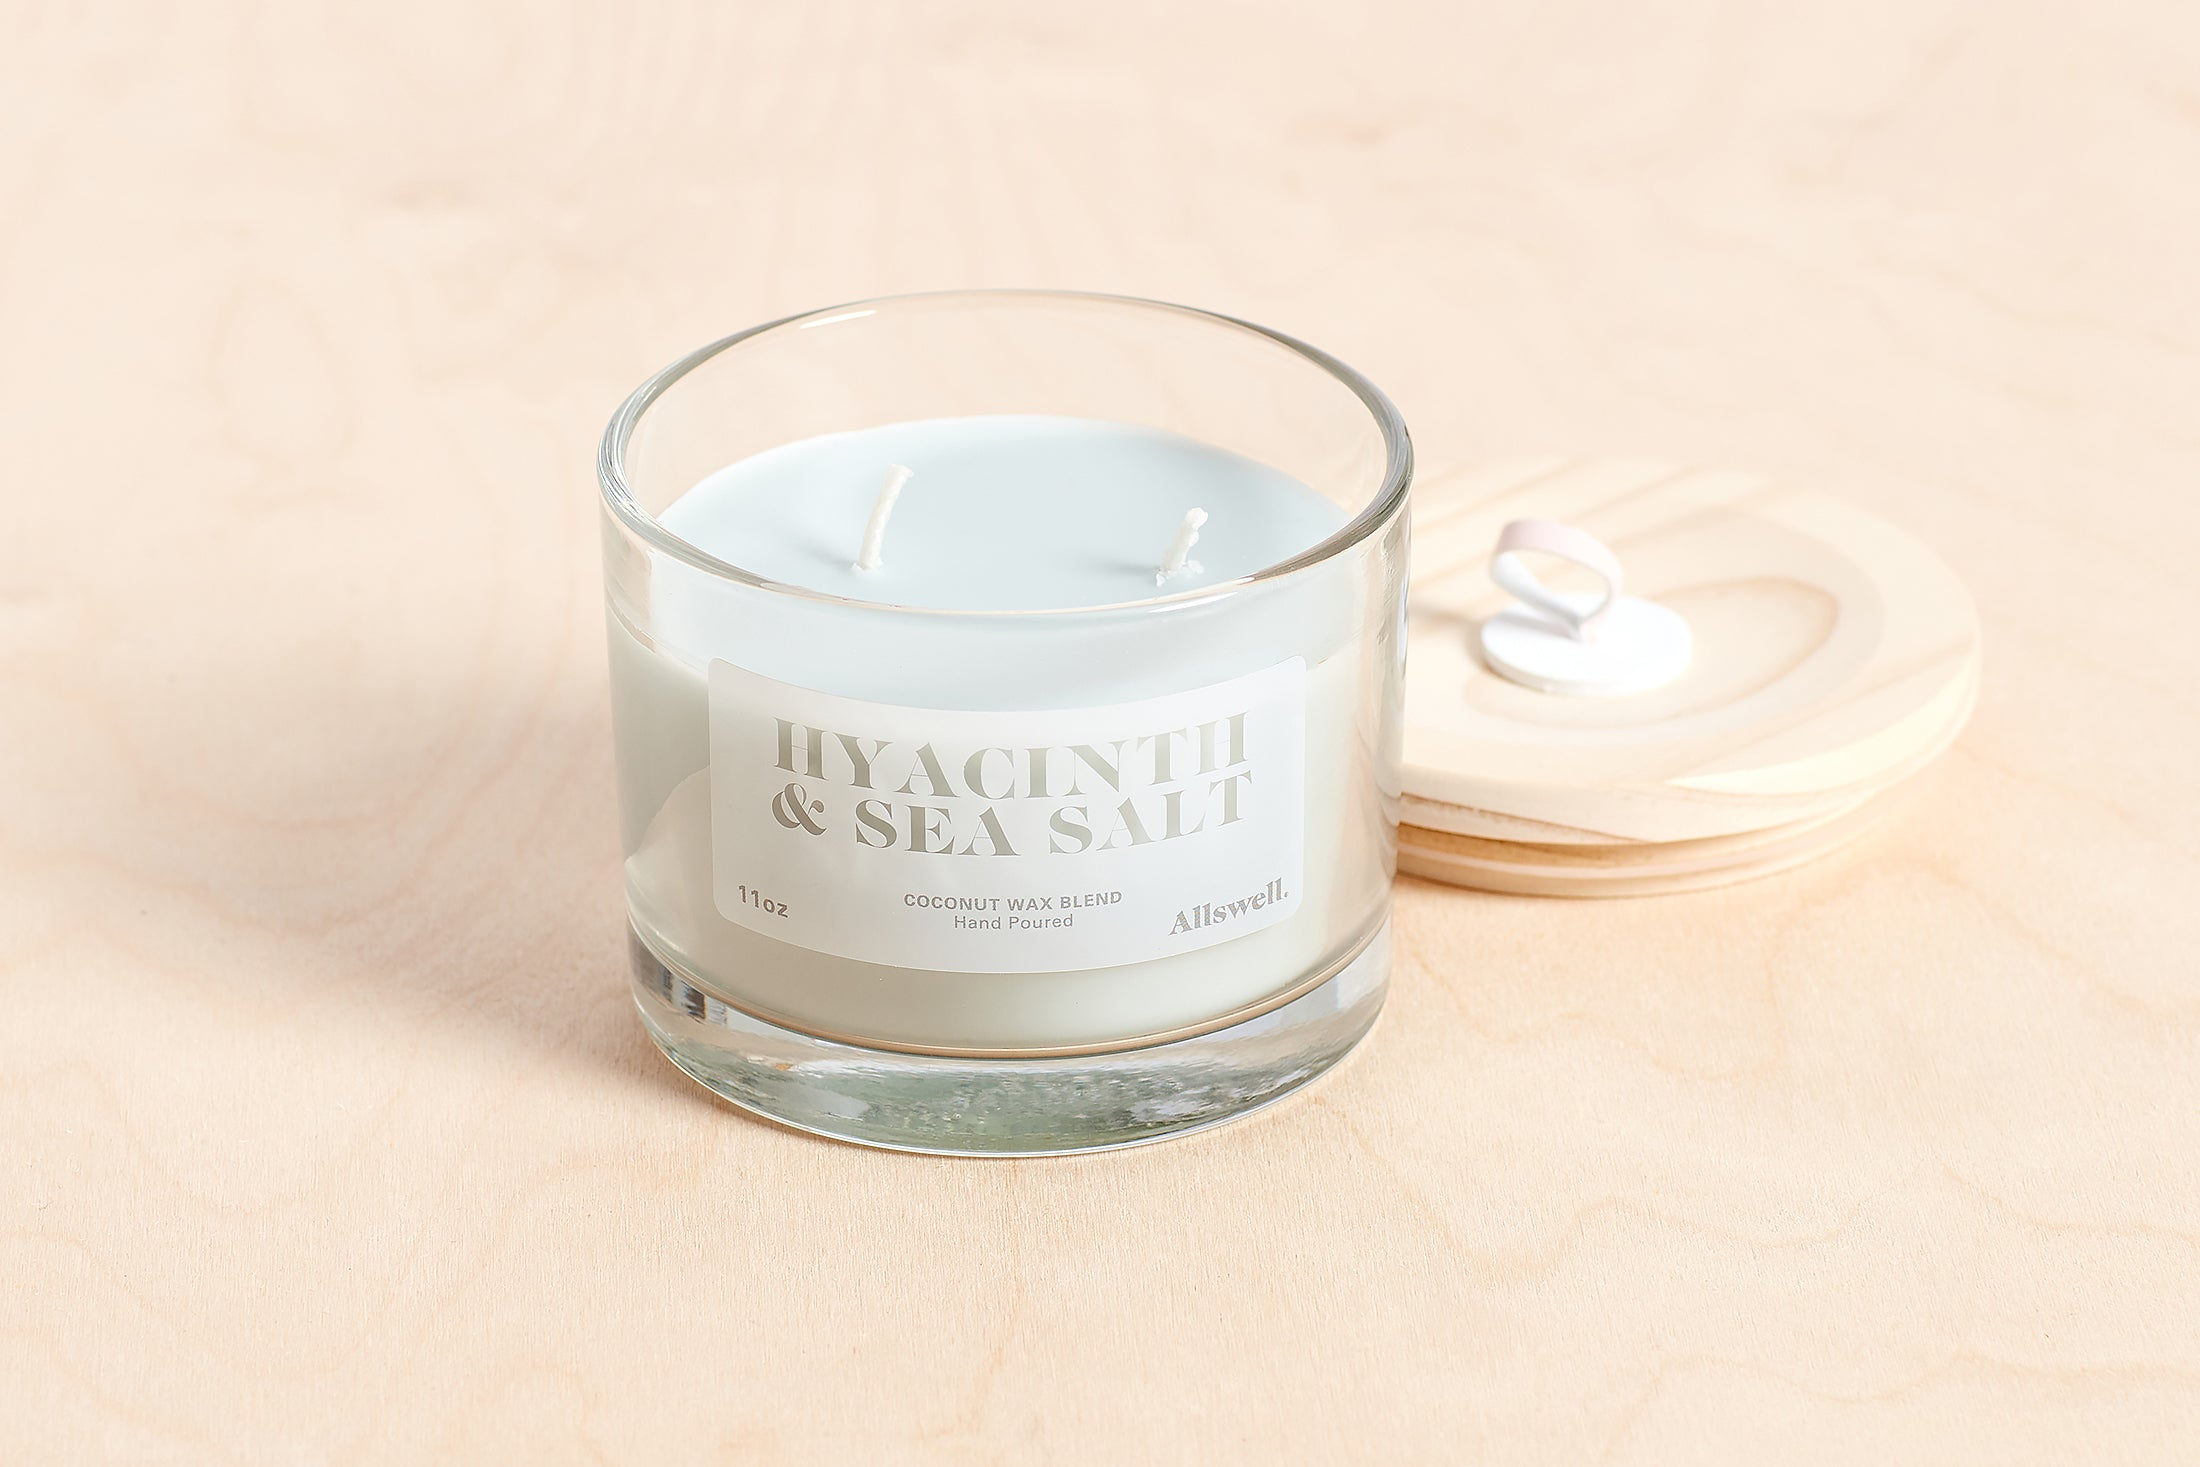 Hyacinth and Sea Salt Coconut Wax Blend Candle